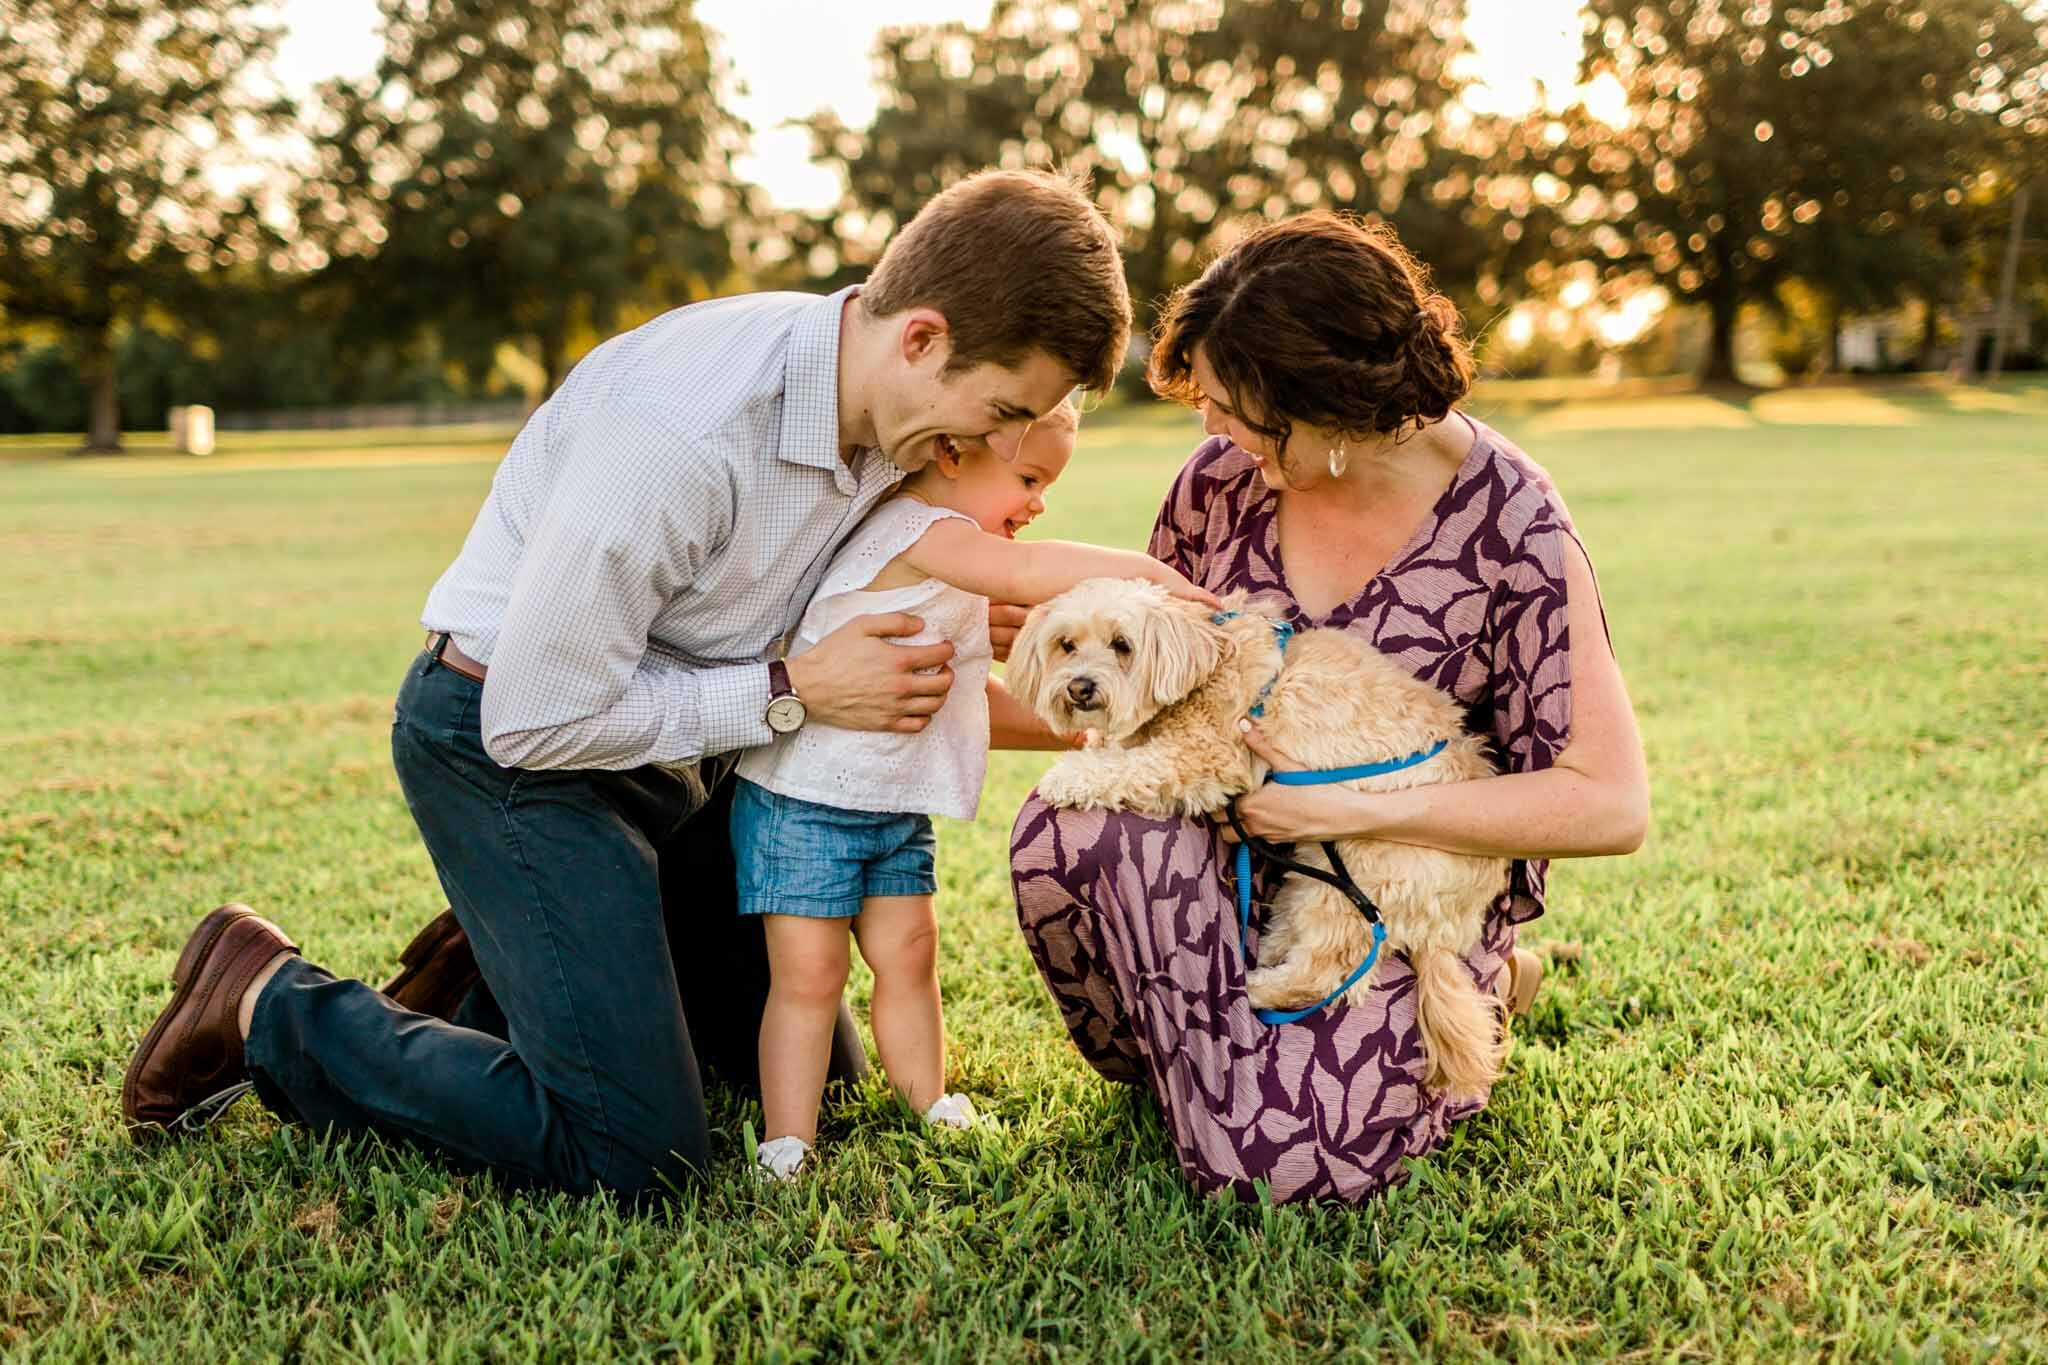 Family laughing together outside | Family Photography at Dix Park Raleigh | By G. Lin Photography